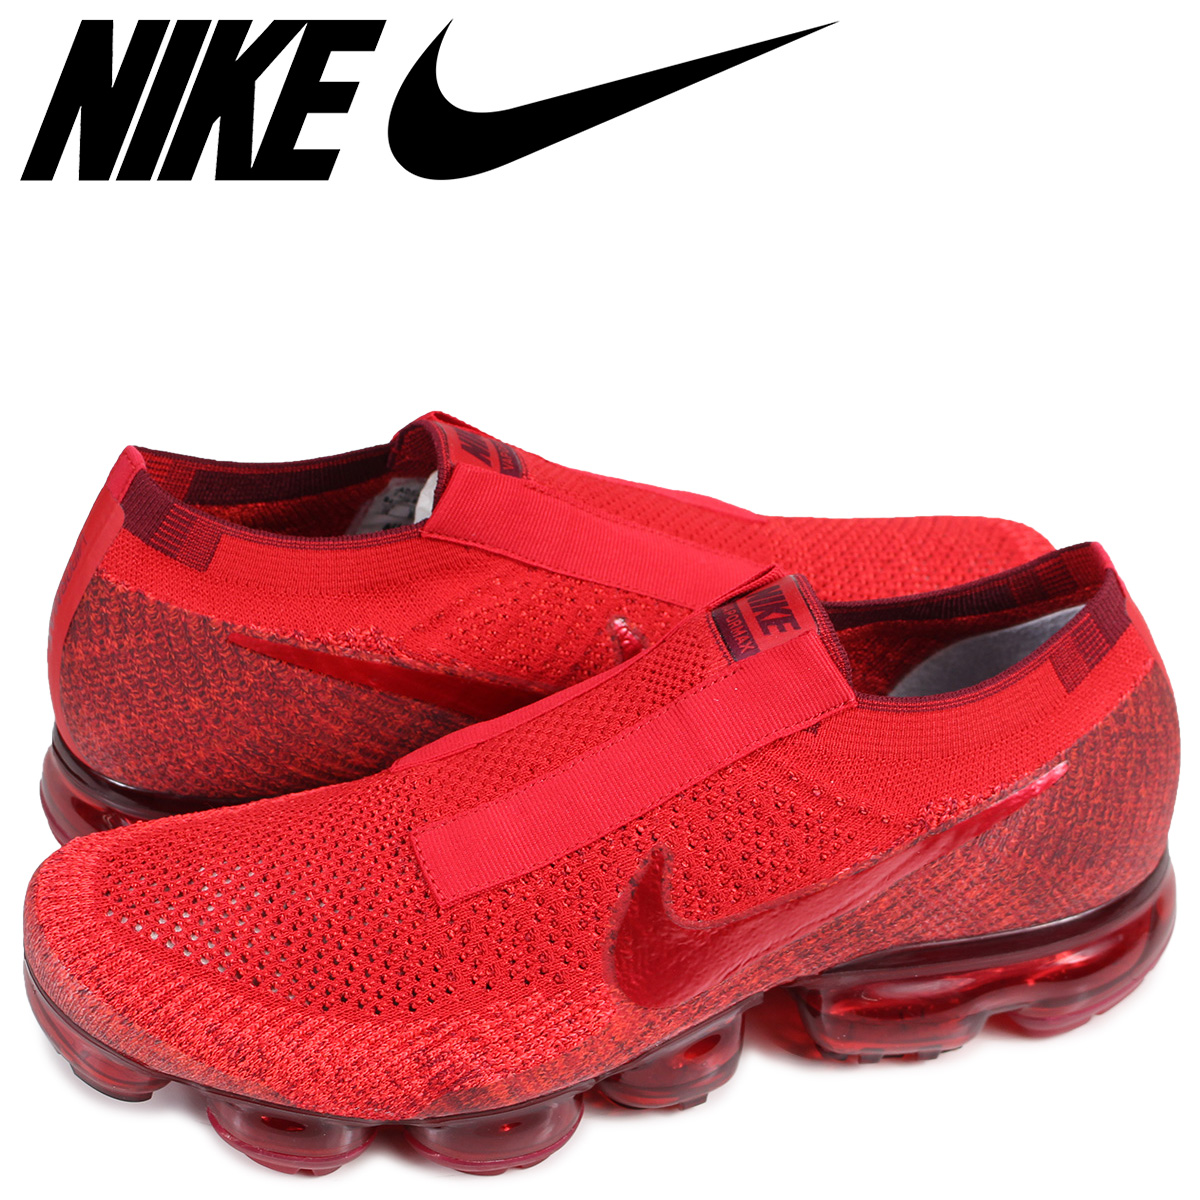 best service c3911 6d2cb NIKE AIR VAPORMAX FLYKNIT ID JEWEL TONES Nike air vapor max fried food knit  sneakers men 941,834-971 red